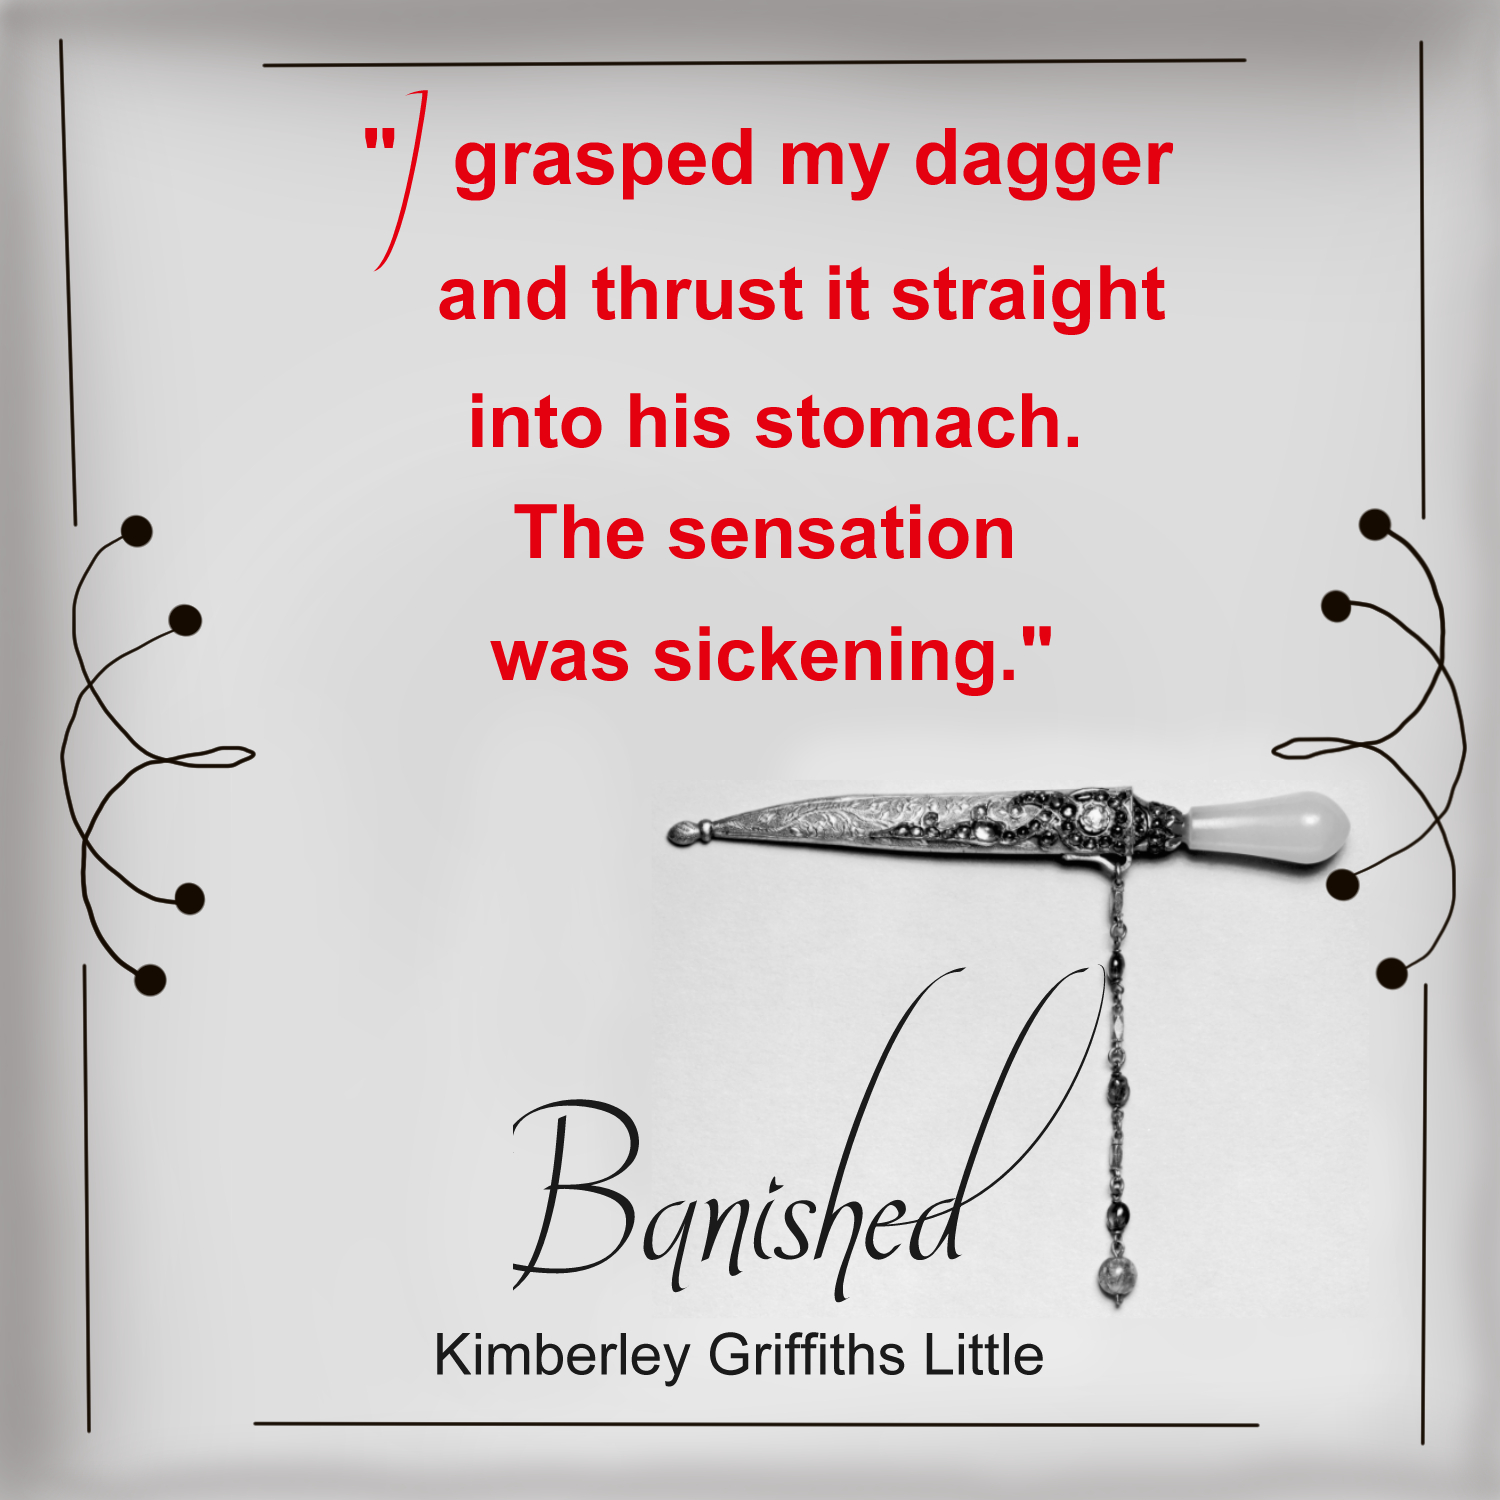 Banished quote I grasped my dagger